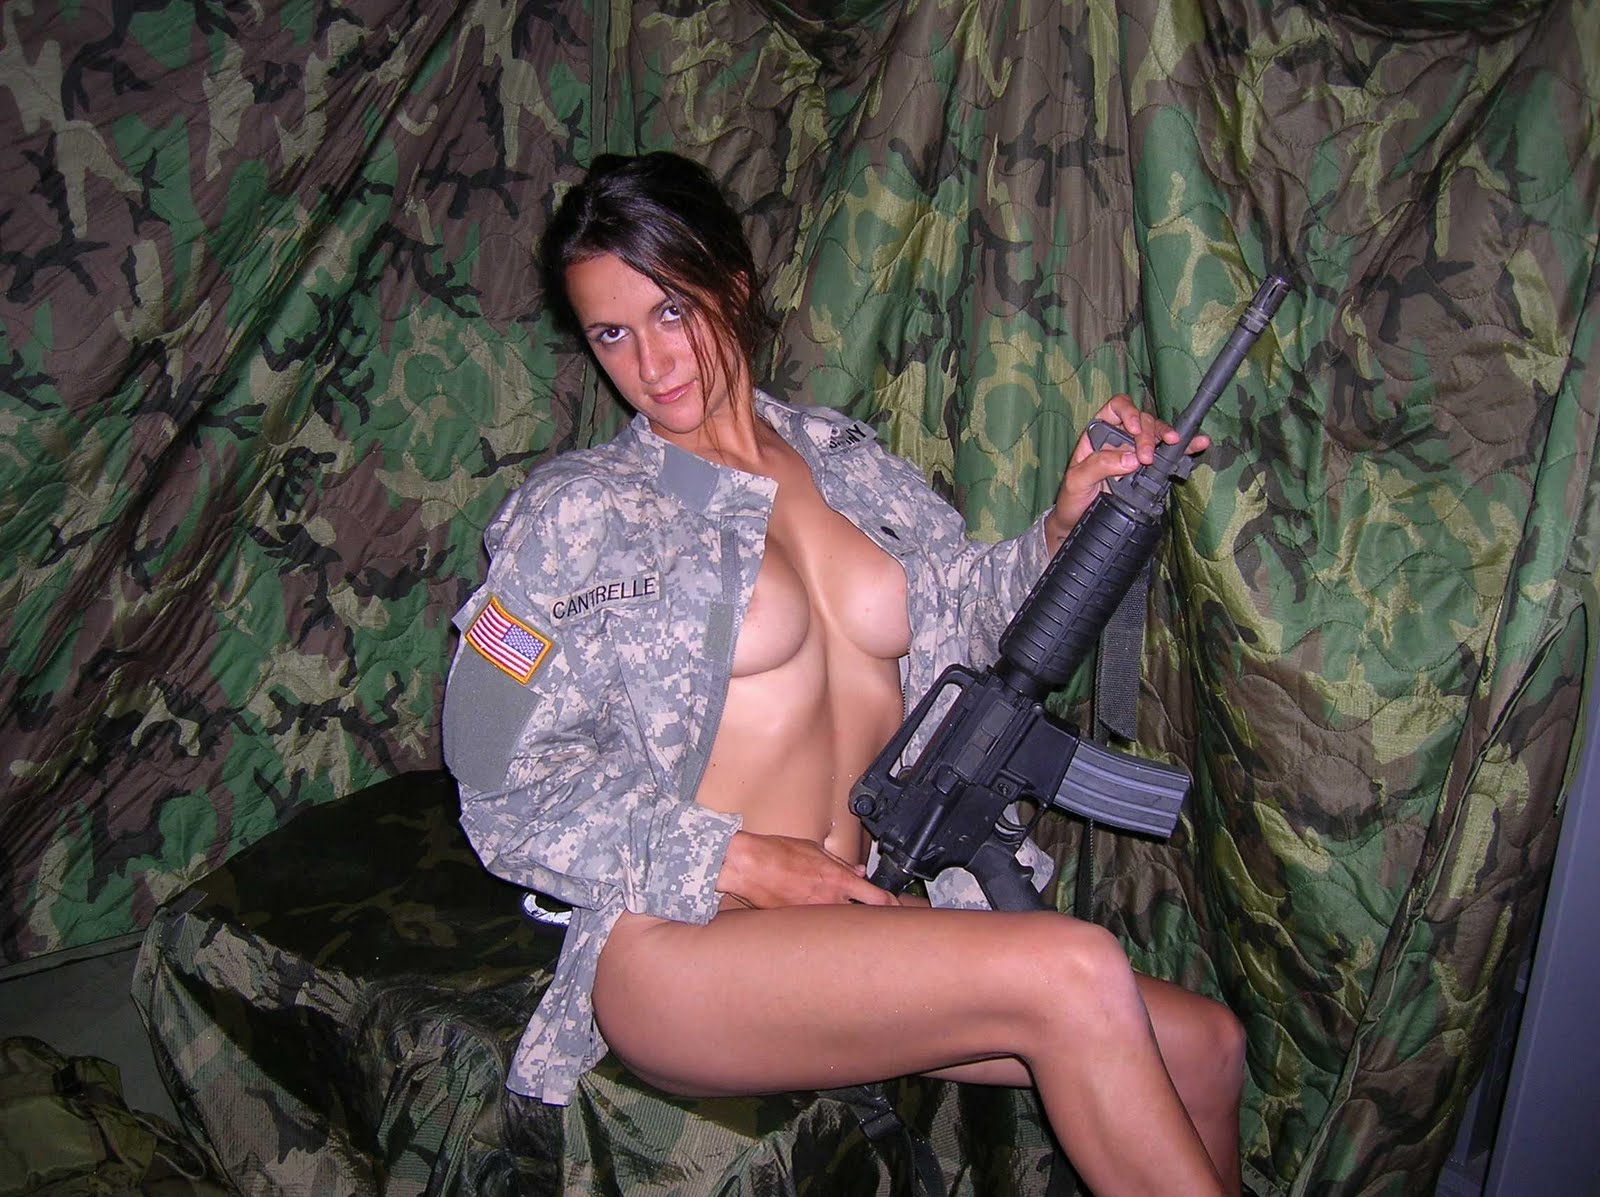 Armed soldier pretty naked woman rifle stock photo